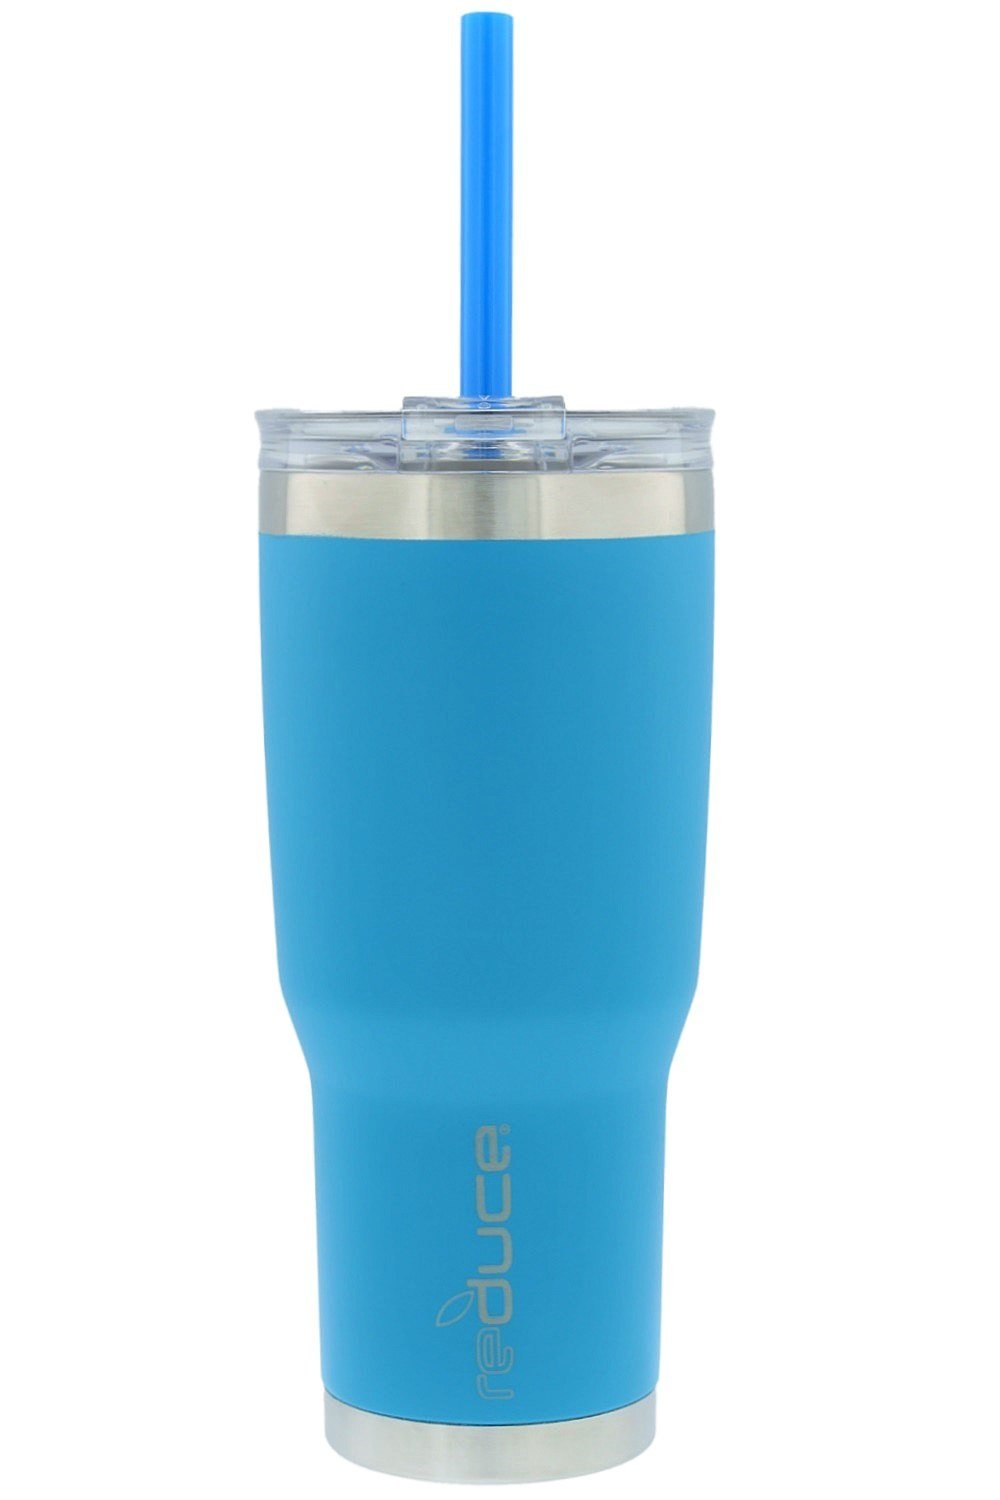 reduce COLD-1 Vacuum Insulated Stainless Steel Tumbler with Straw, 3-in-1 Lid - Tasteless and Odorless, 24oz - Powder Coat (Blue)